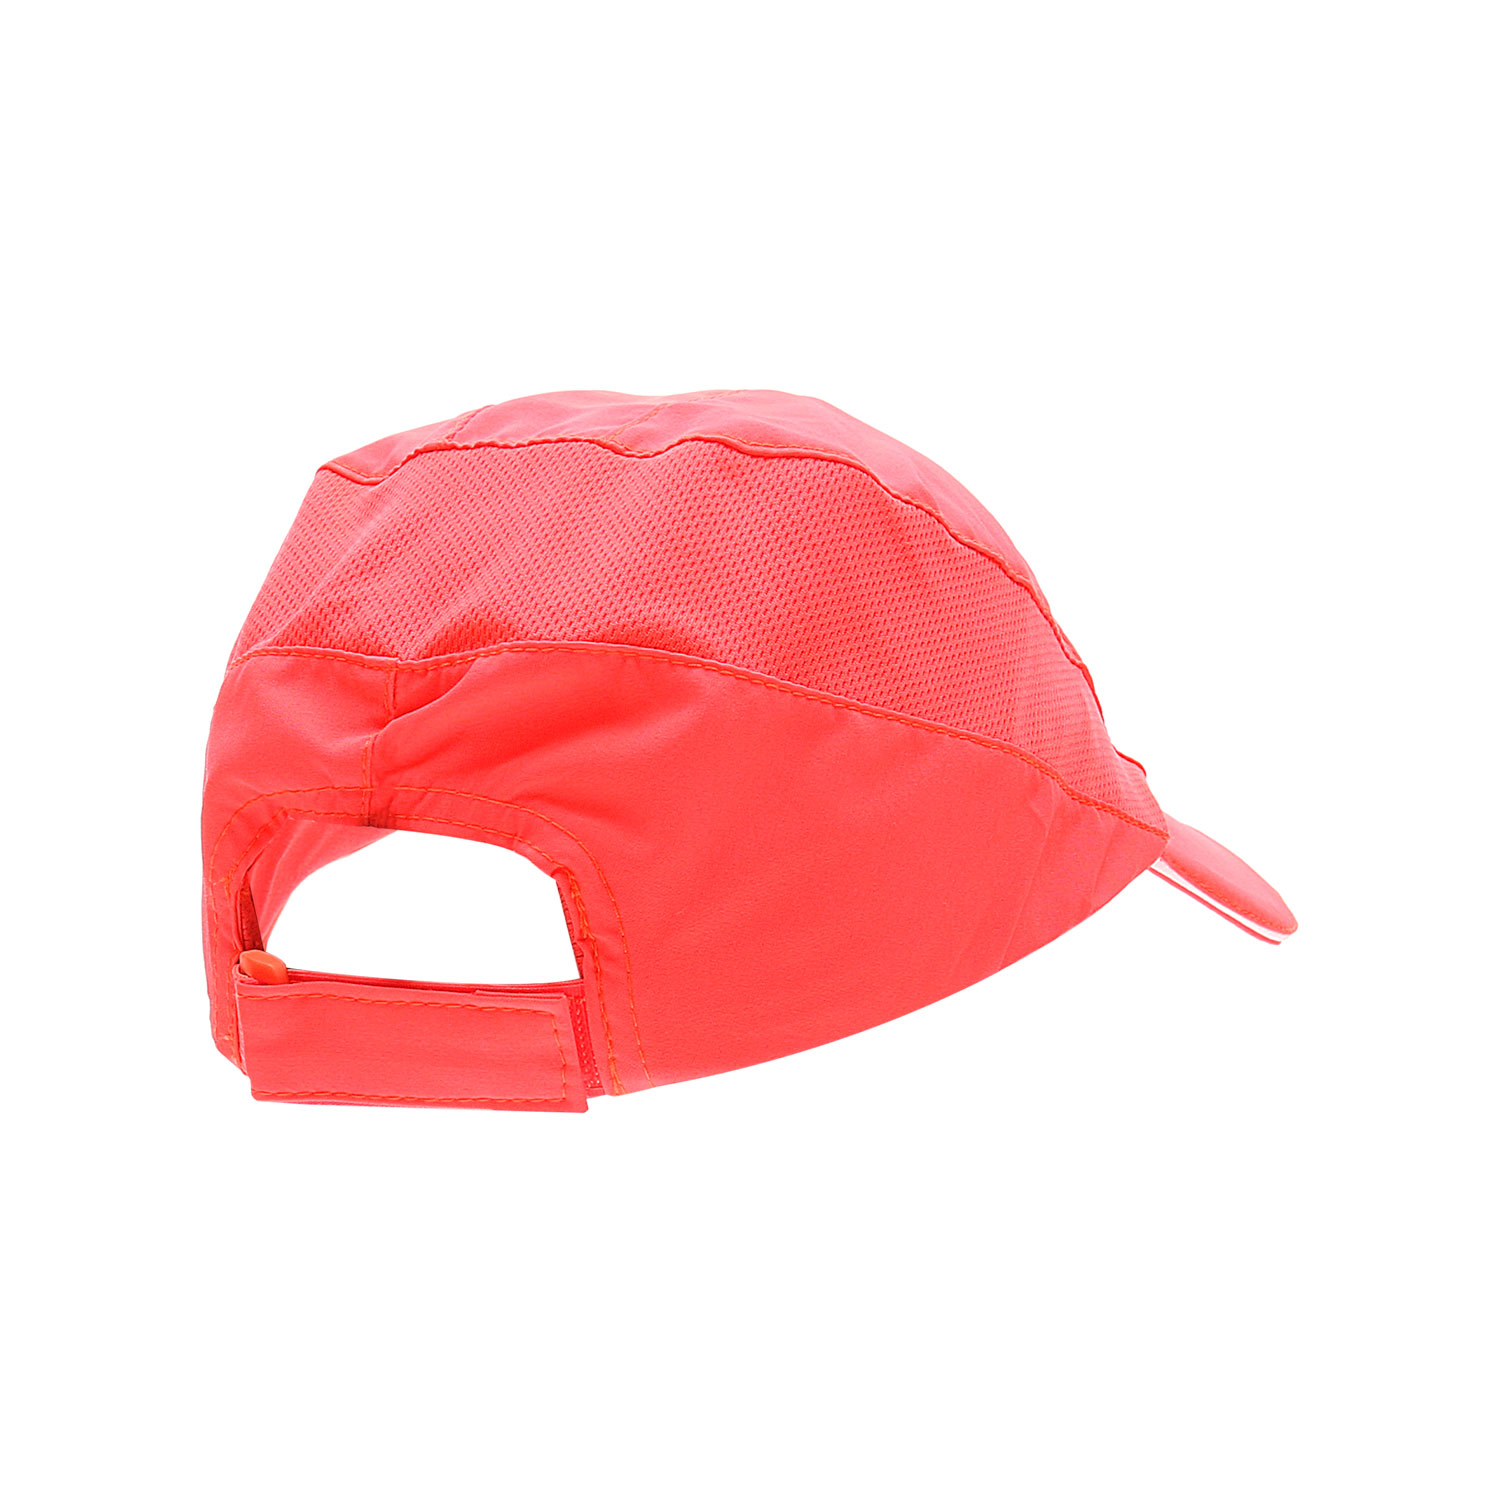 Lotto Tennis Cap - Fiery Coral